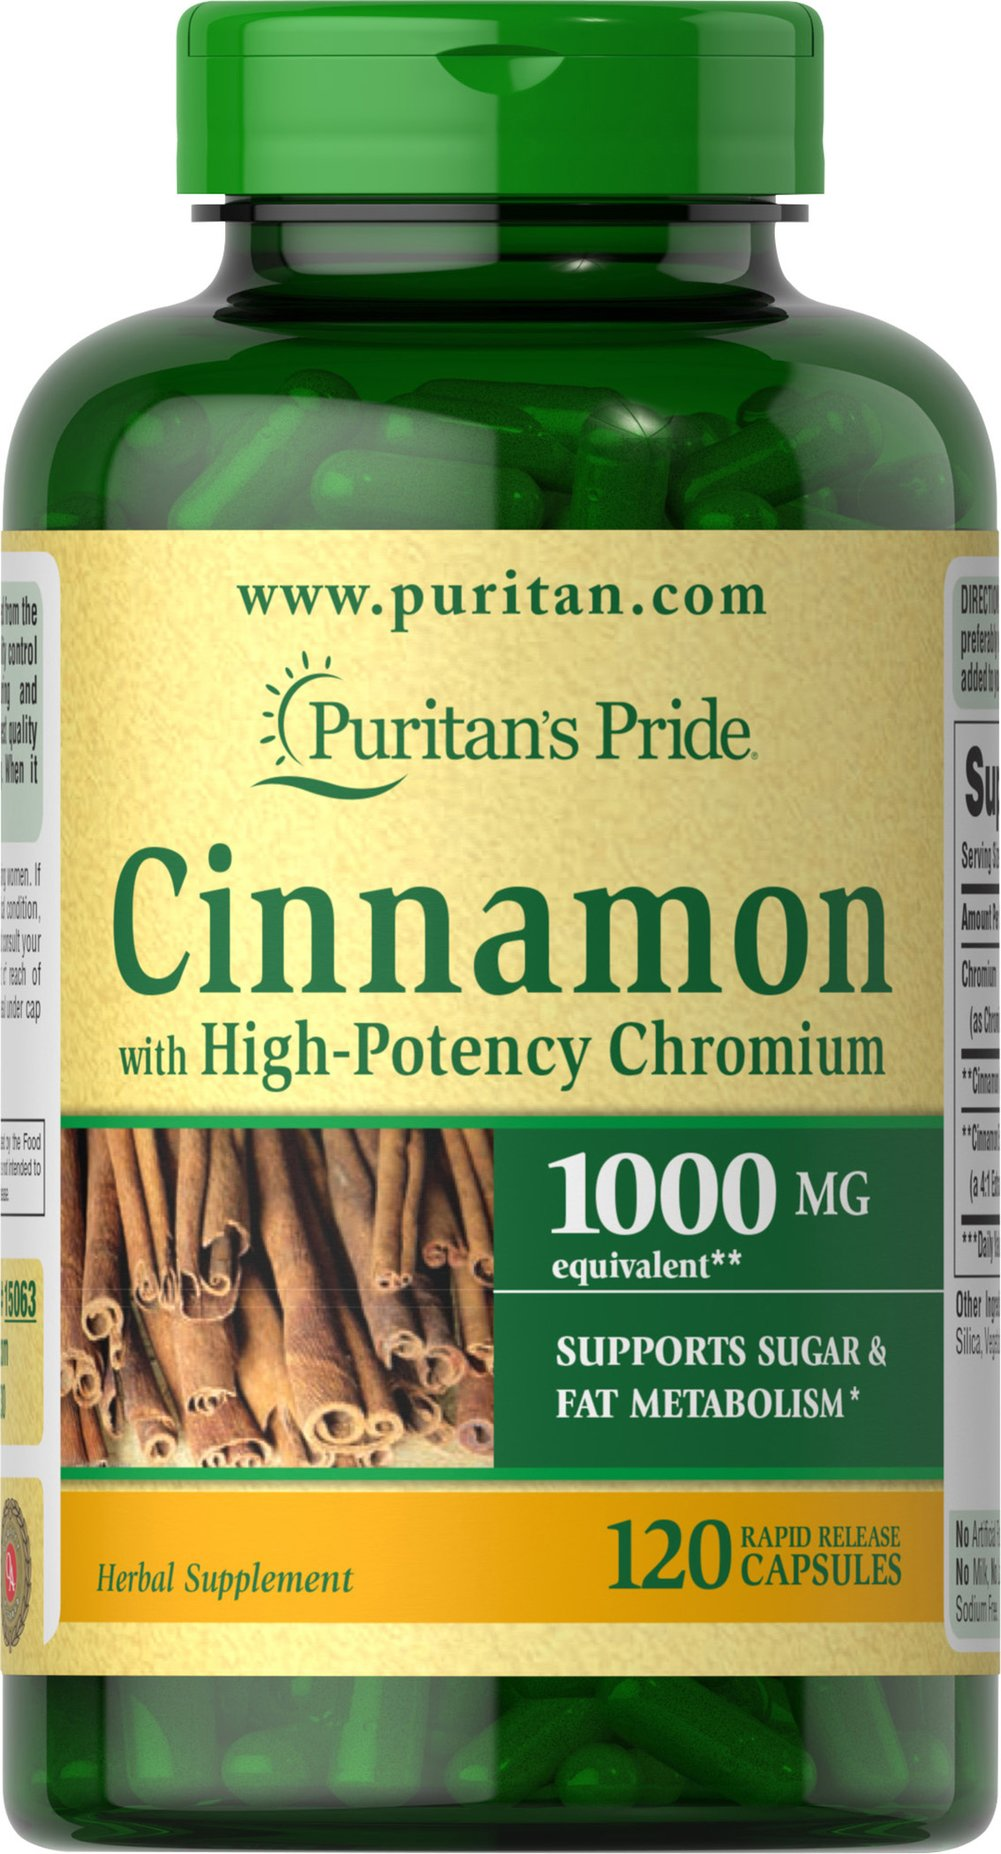 Cinnamon Complex with High Potency Chromium <ul><li>SUPPORTS SUGAR & FAT METABOLISM**</li></ul><p>Cinnamon is an ancient herb that has recently gained widespread popularity for its ability to support health and wellness.** This synergistic formula includes high-potency Chromium Picolinate. Specially formulated to deliver 1000 mg Cinnamon and 200 mcg Chromium Picolinate — an unbeatable combination.</p> 120 Capsules 1000 mg $23.99